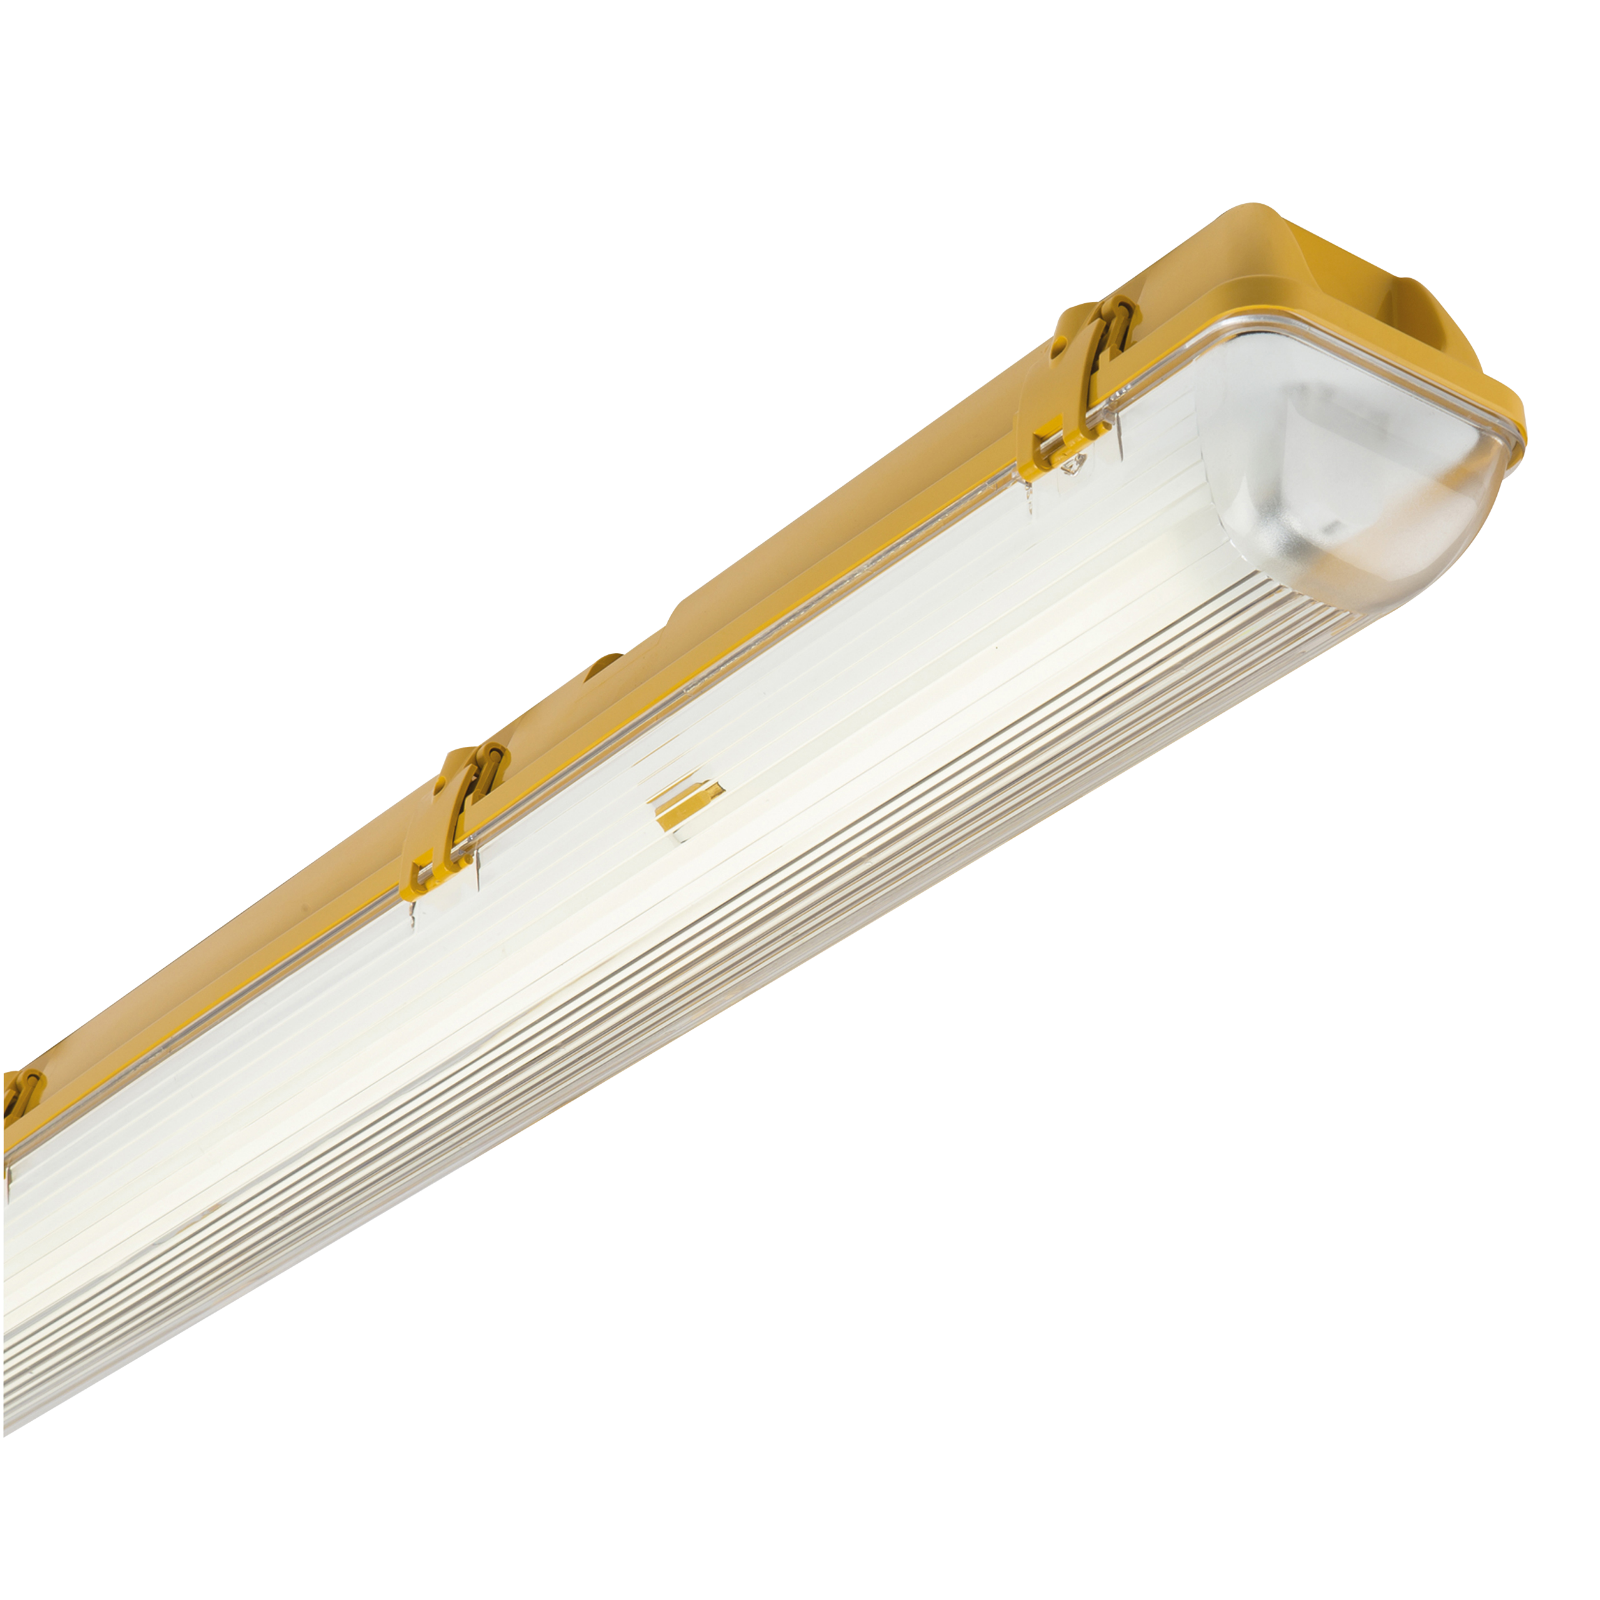 110V IP65 1x58W HF Single Non-Corrosive Fluorescent Fitting